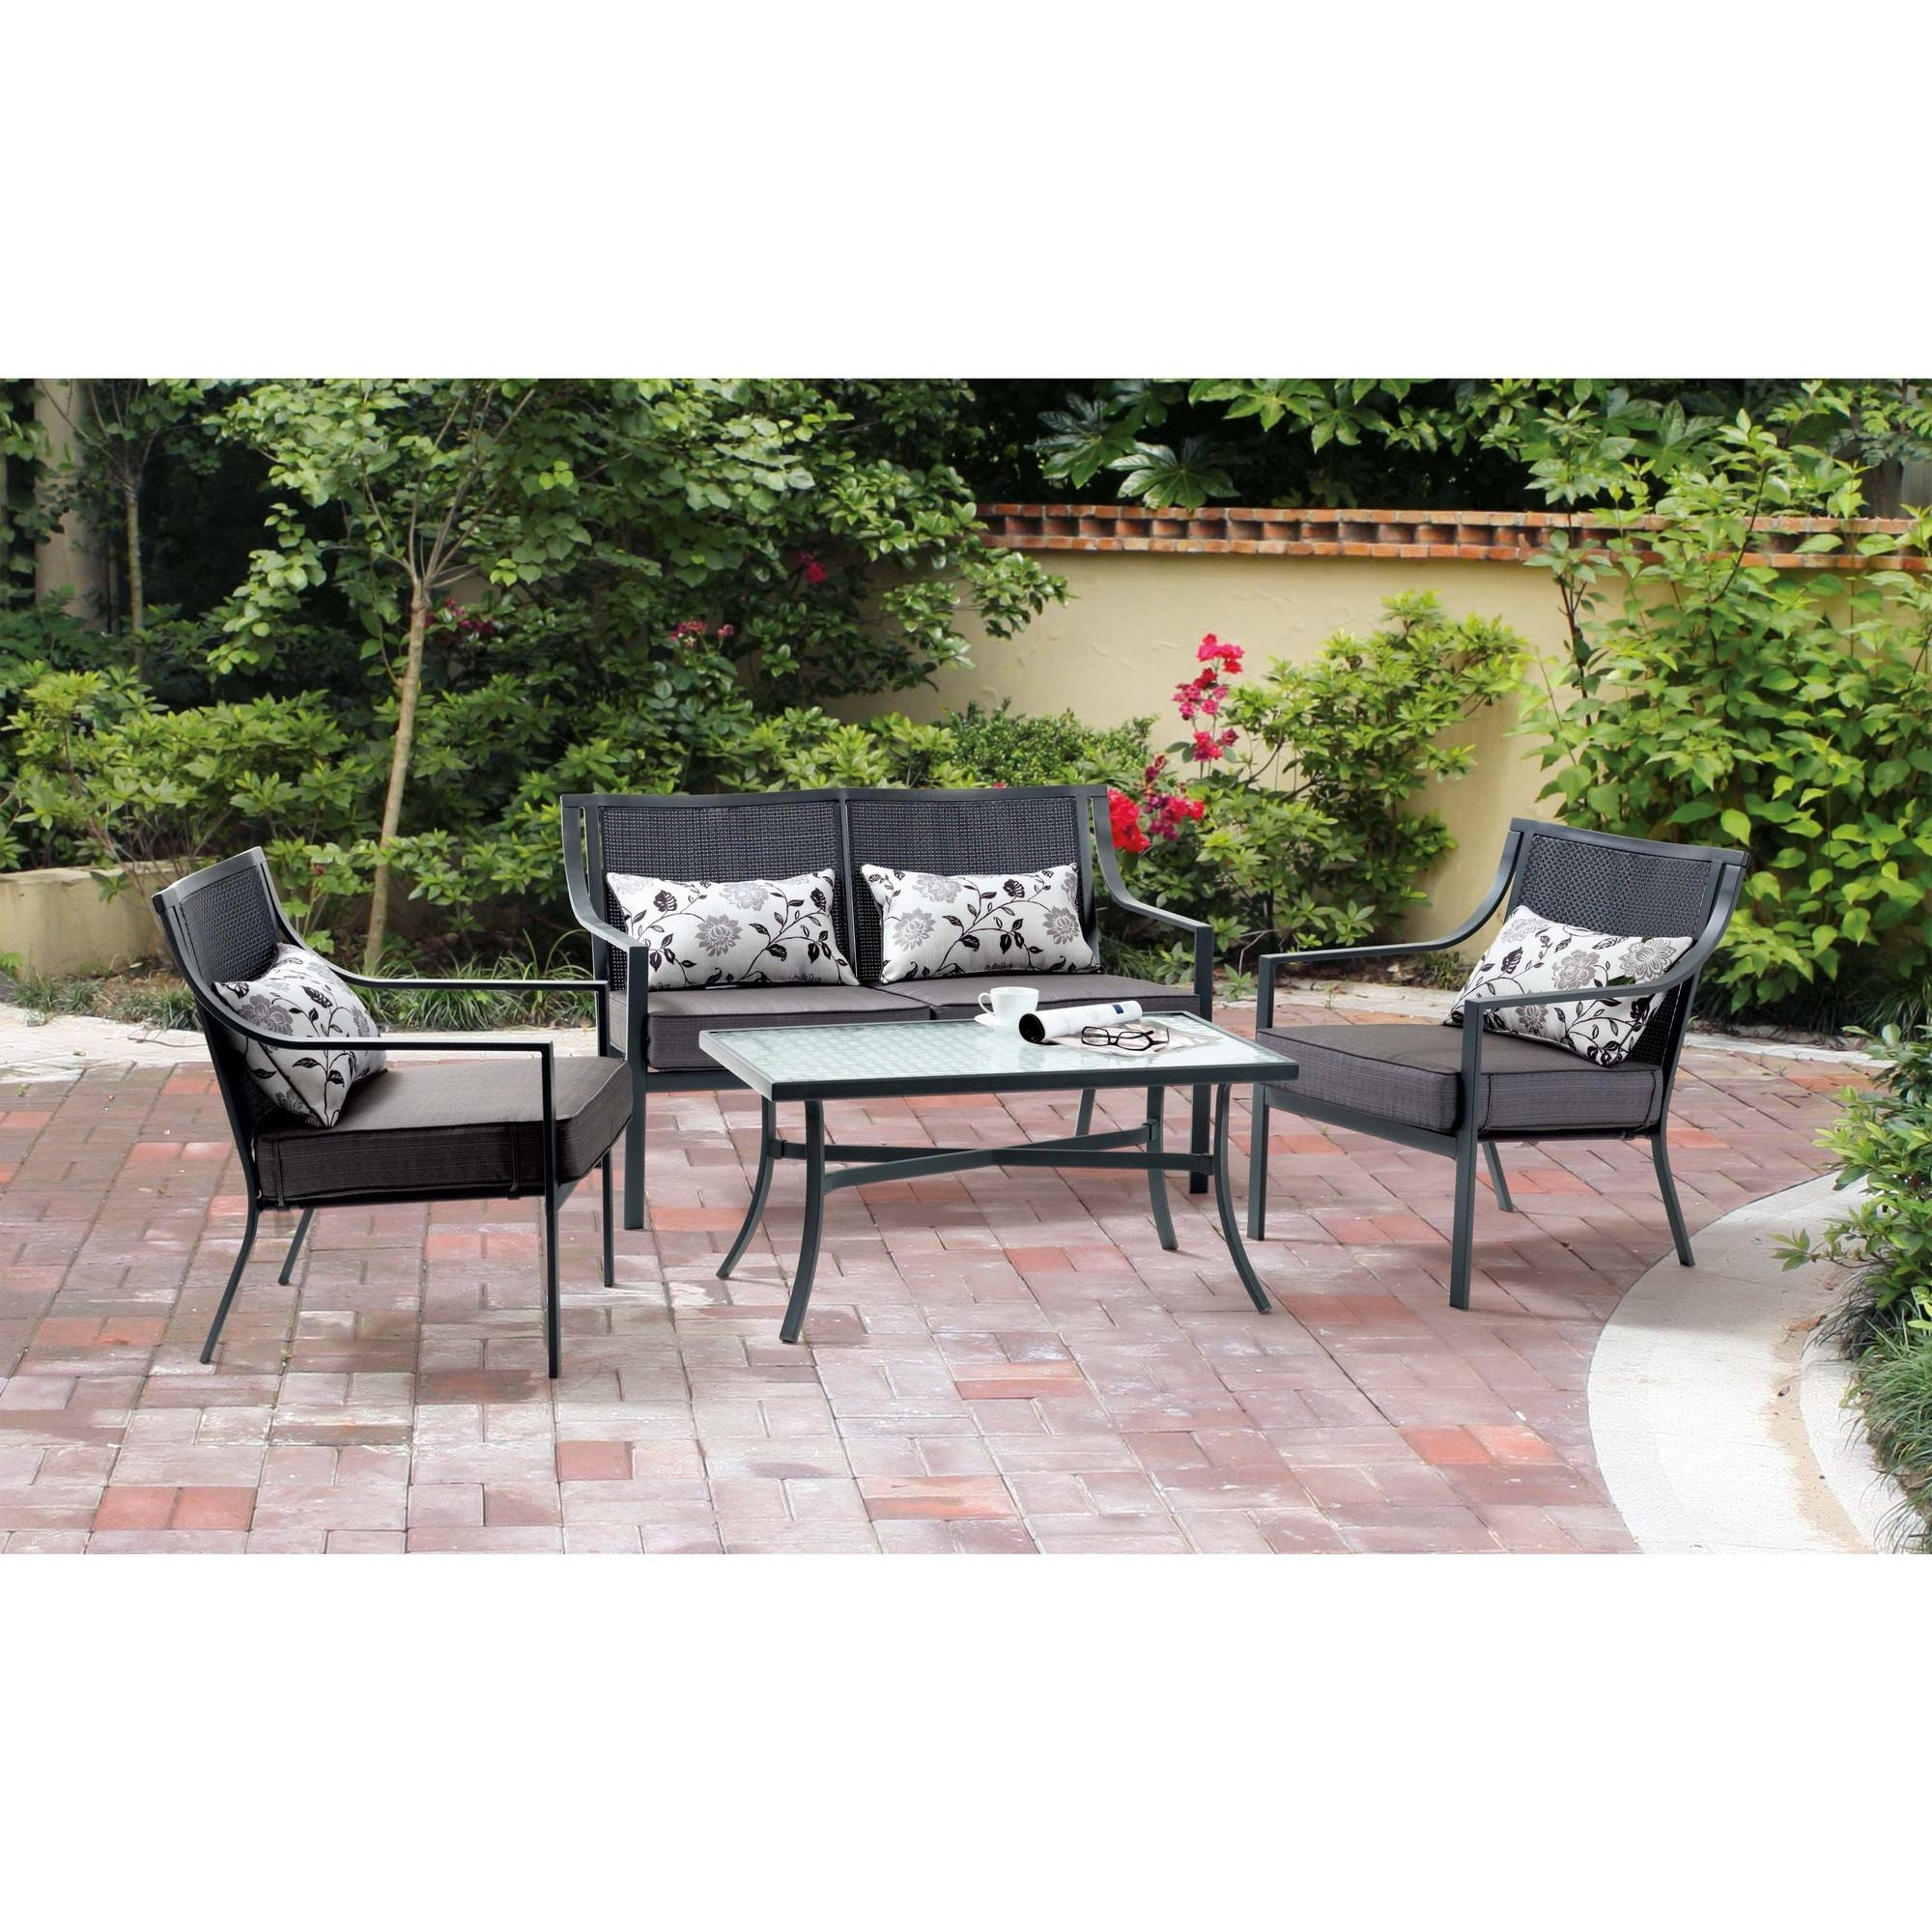 Mainstays Alexandra Square 4 Piece Patio Conversation Set, Grey With With Fashionable Grey Patio Conversation Sets (View 20 of 20)